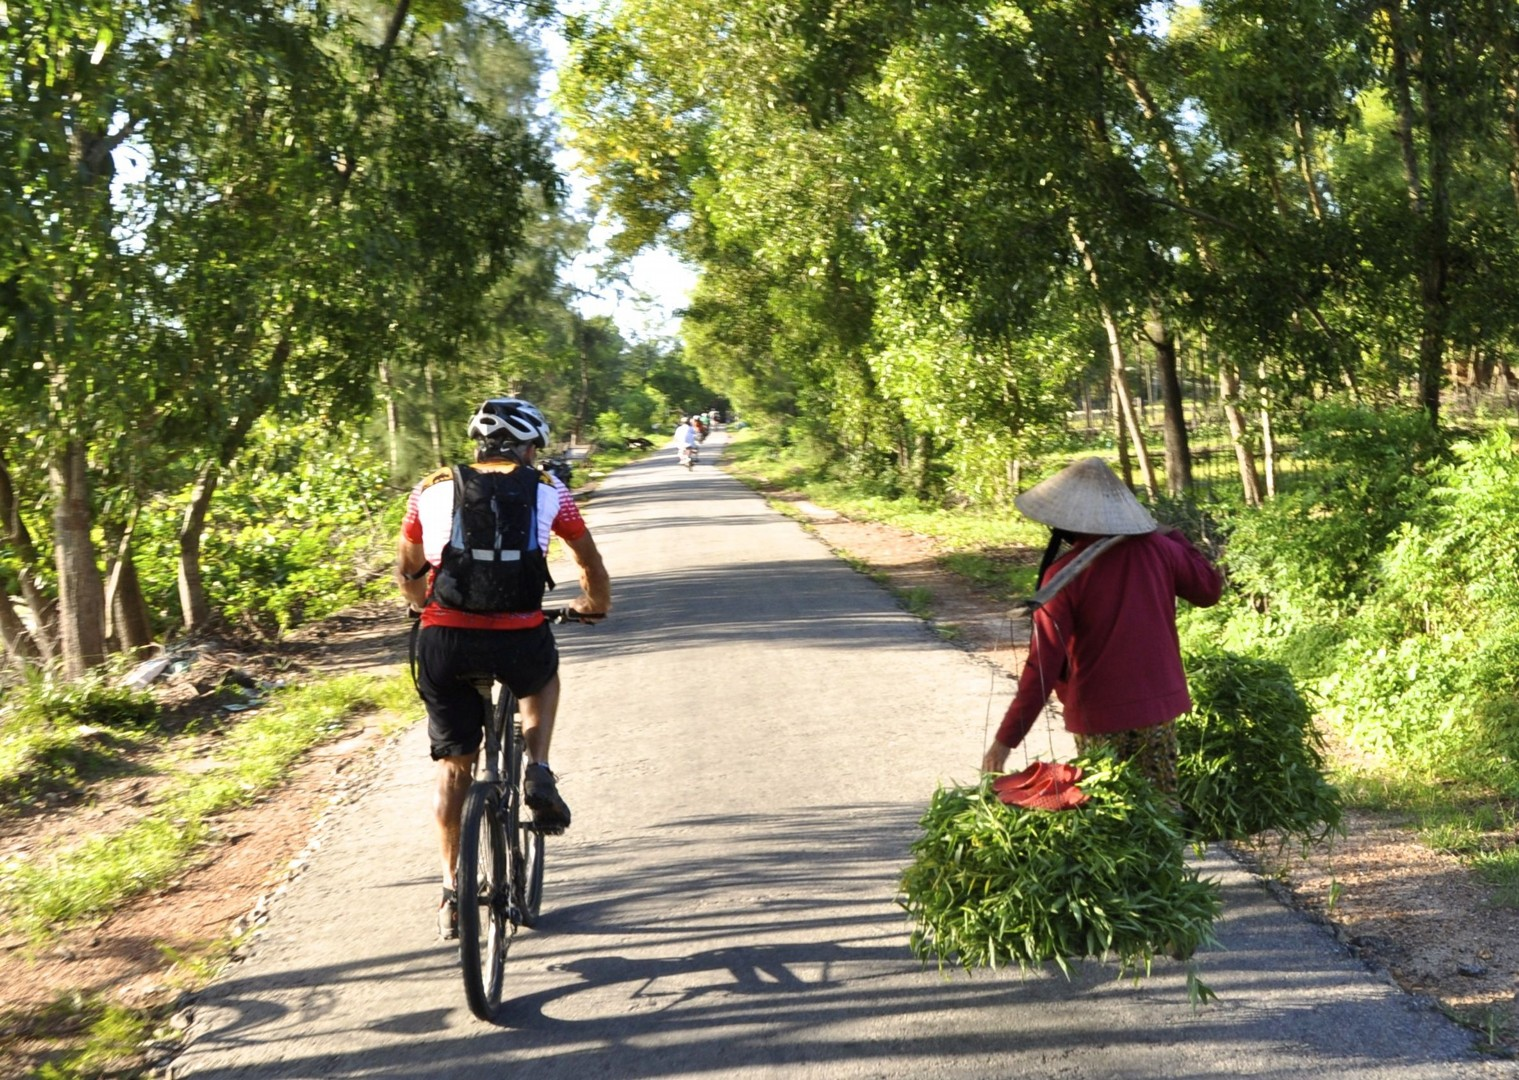 vietnamcycling holiday4.jpg - Vietnam - Mountains and Coast - Cycling Adventures